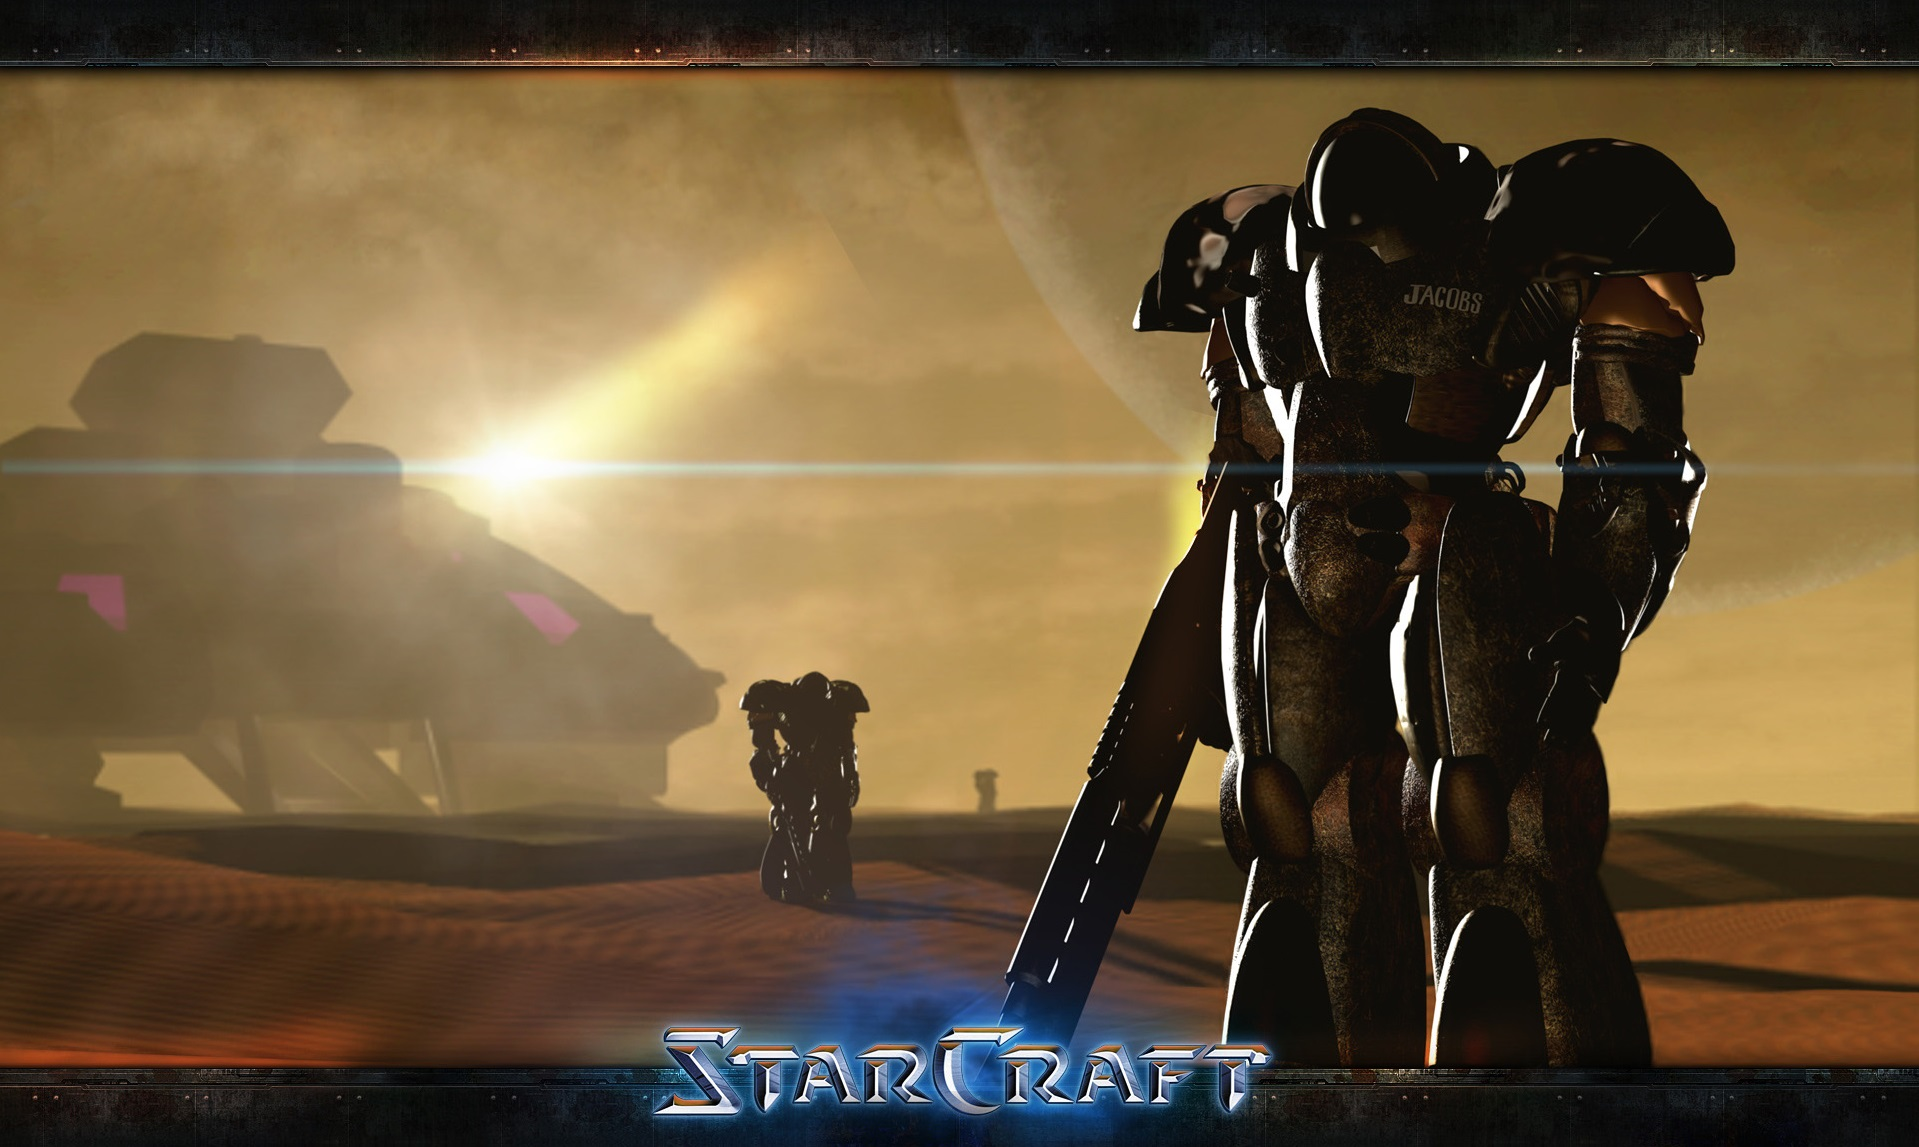 After 19 years, StarCraft has gone free-to-play screenshot